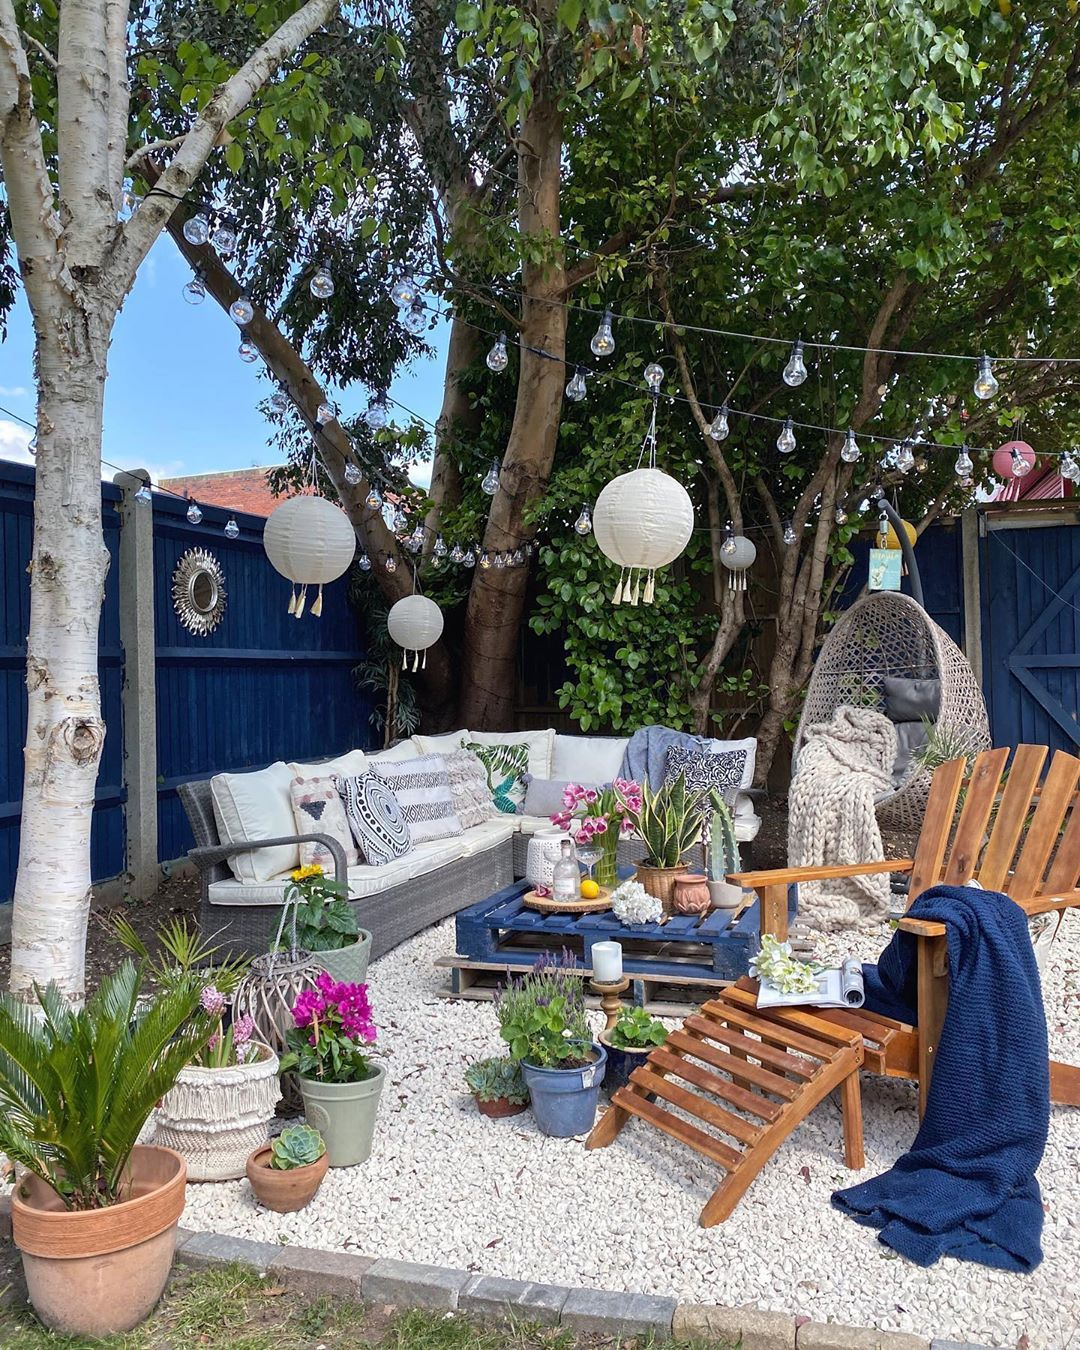 15-cool-ideas-to-decorate-your-the-garden-of-your-home-with-white-gravel-new-2020